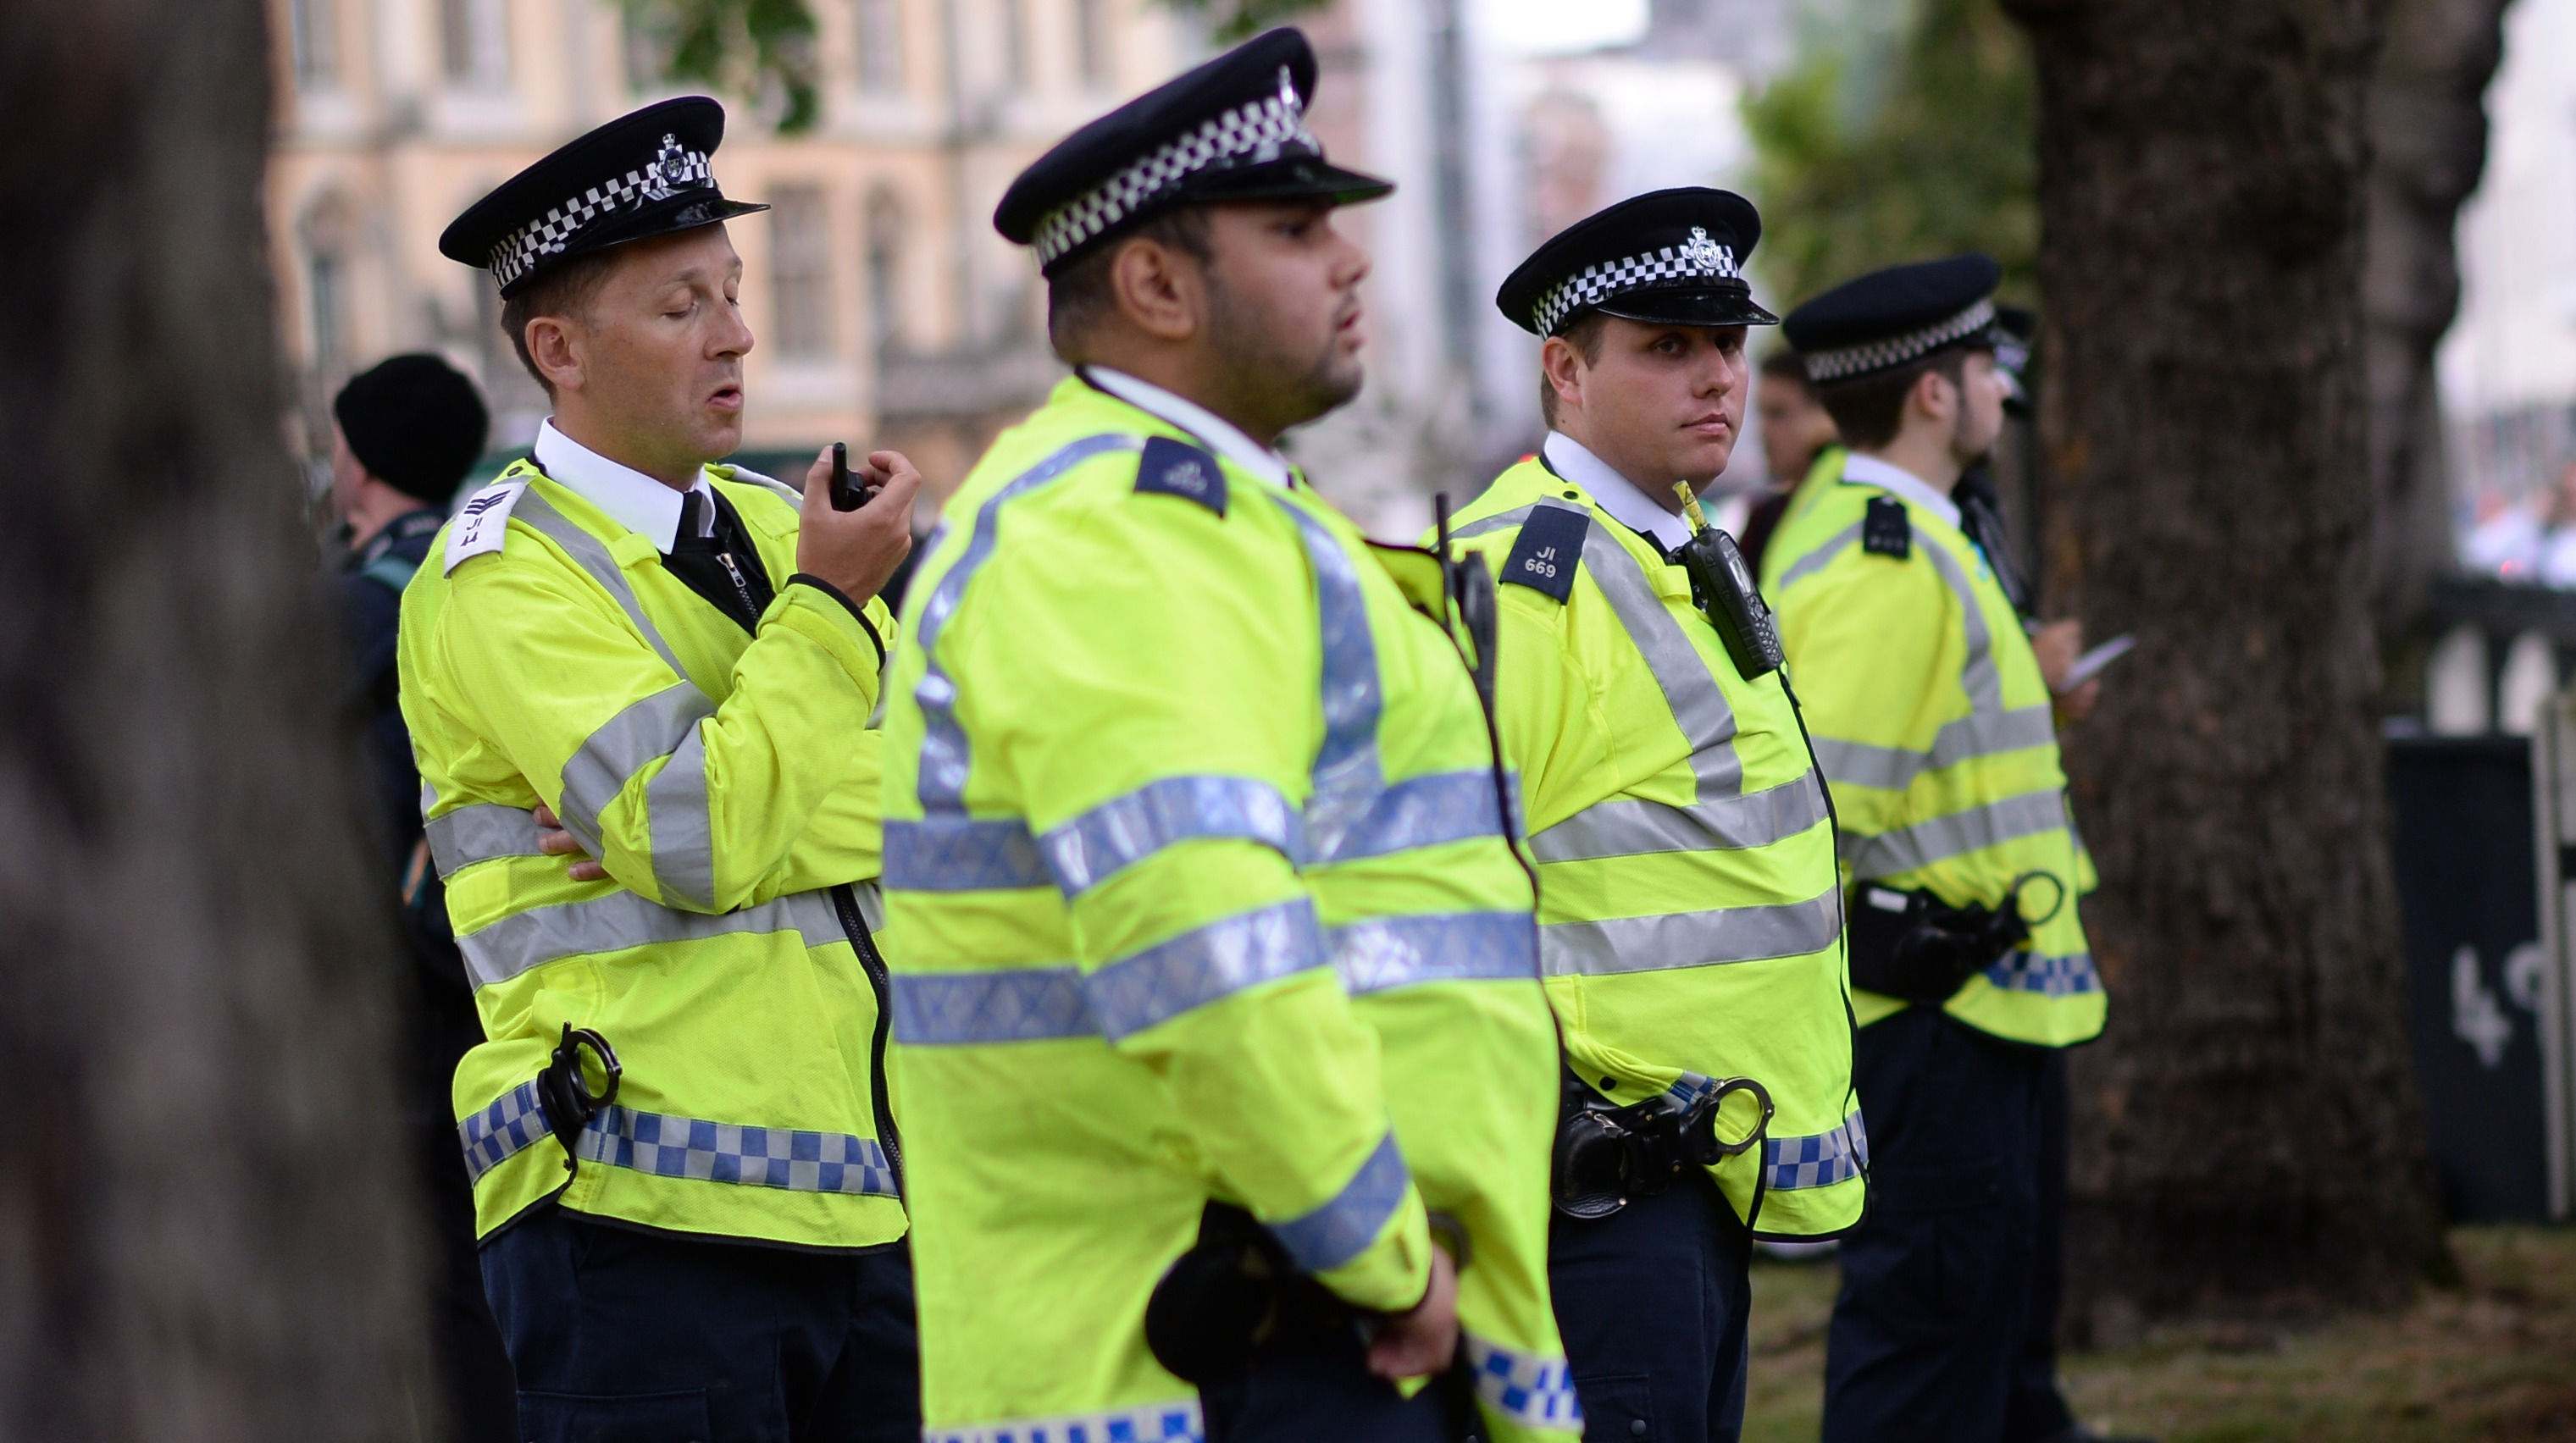 public opinion of police Free essay: public opinion of police by different ethnic groups xxxxxxxxx cja 344 march 24, 2014 benjamin harm public opinion of police by different ethnic.